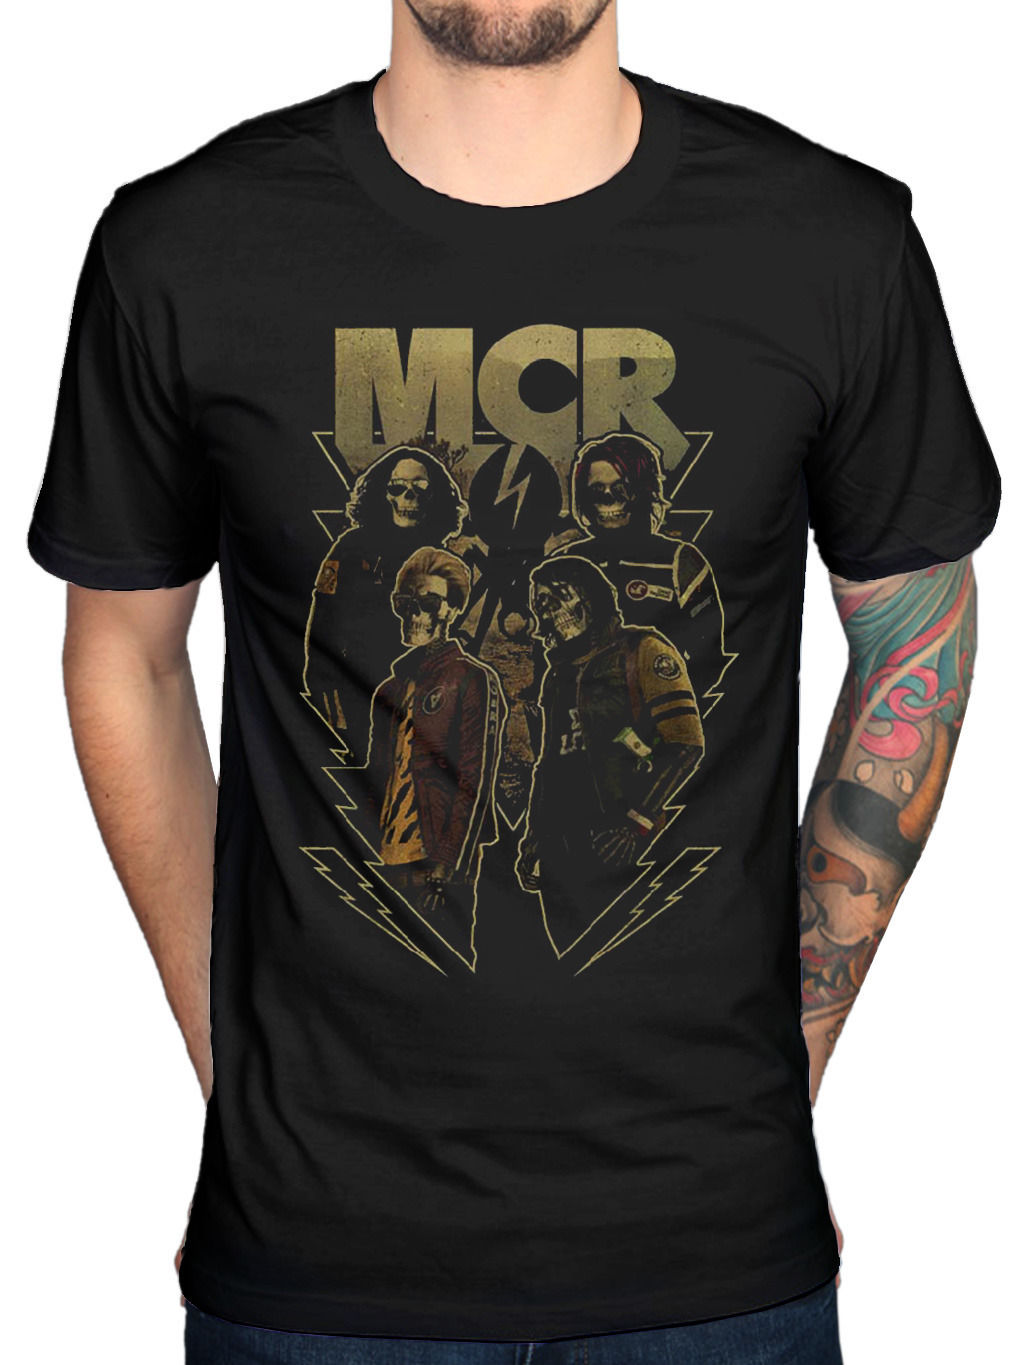 Official My Chemical Romance Appetite for Danger T-Shirt Gerard Way Merchandise New Fashion Men T Shirt 2018 Fashion